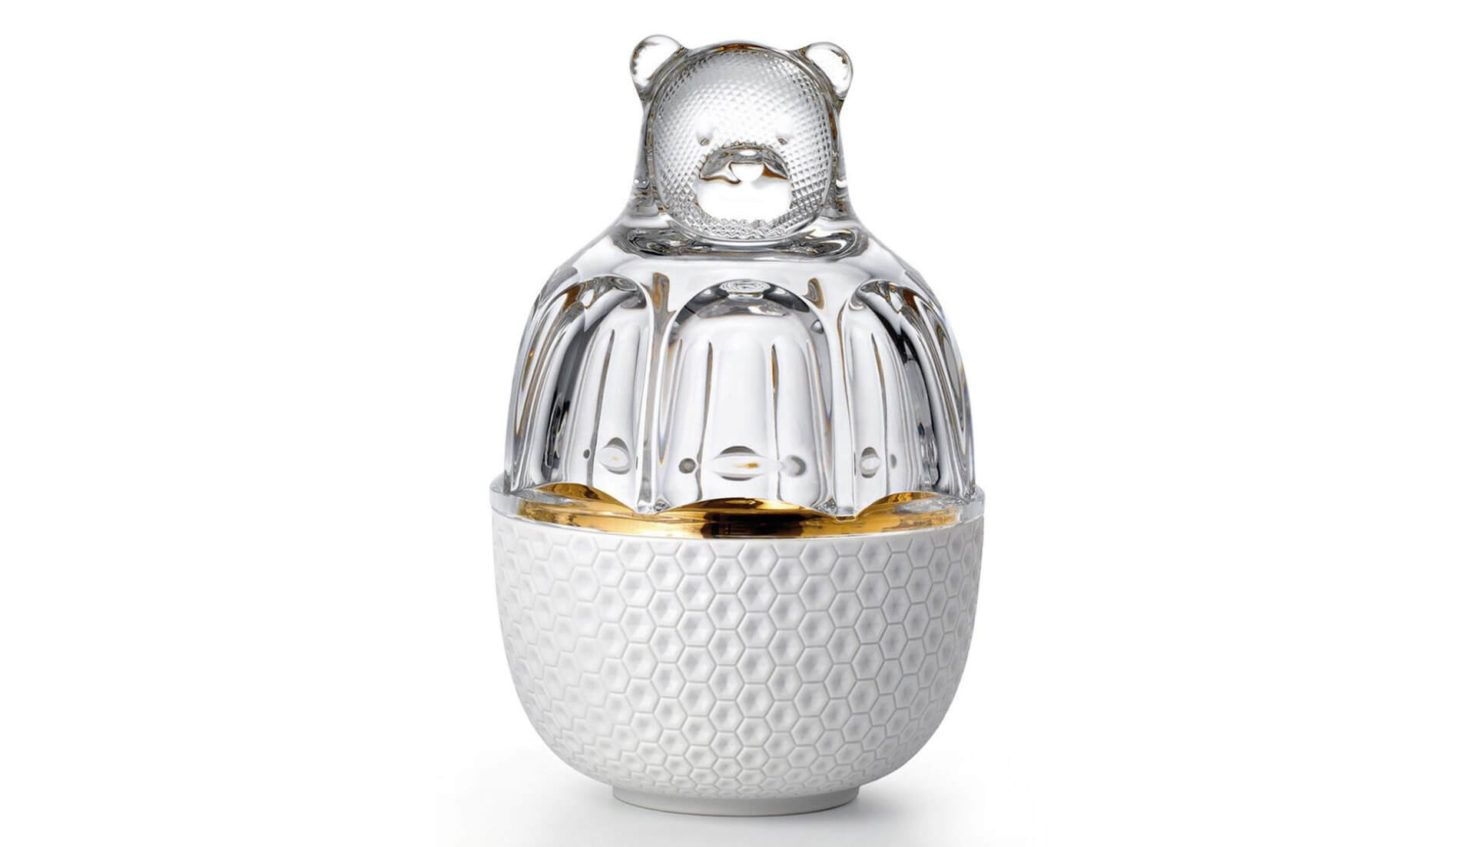 Baccarat Zoo Ornament